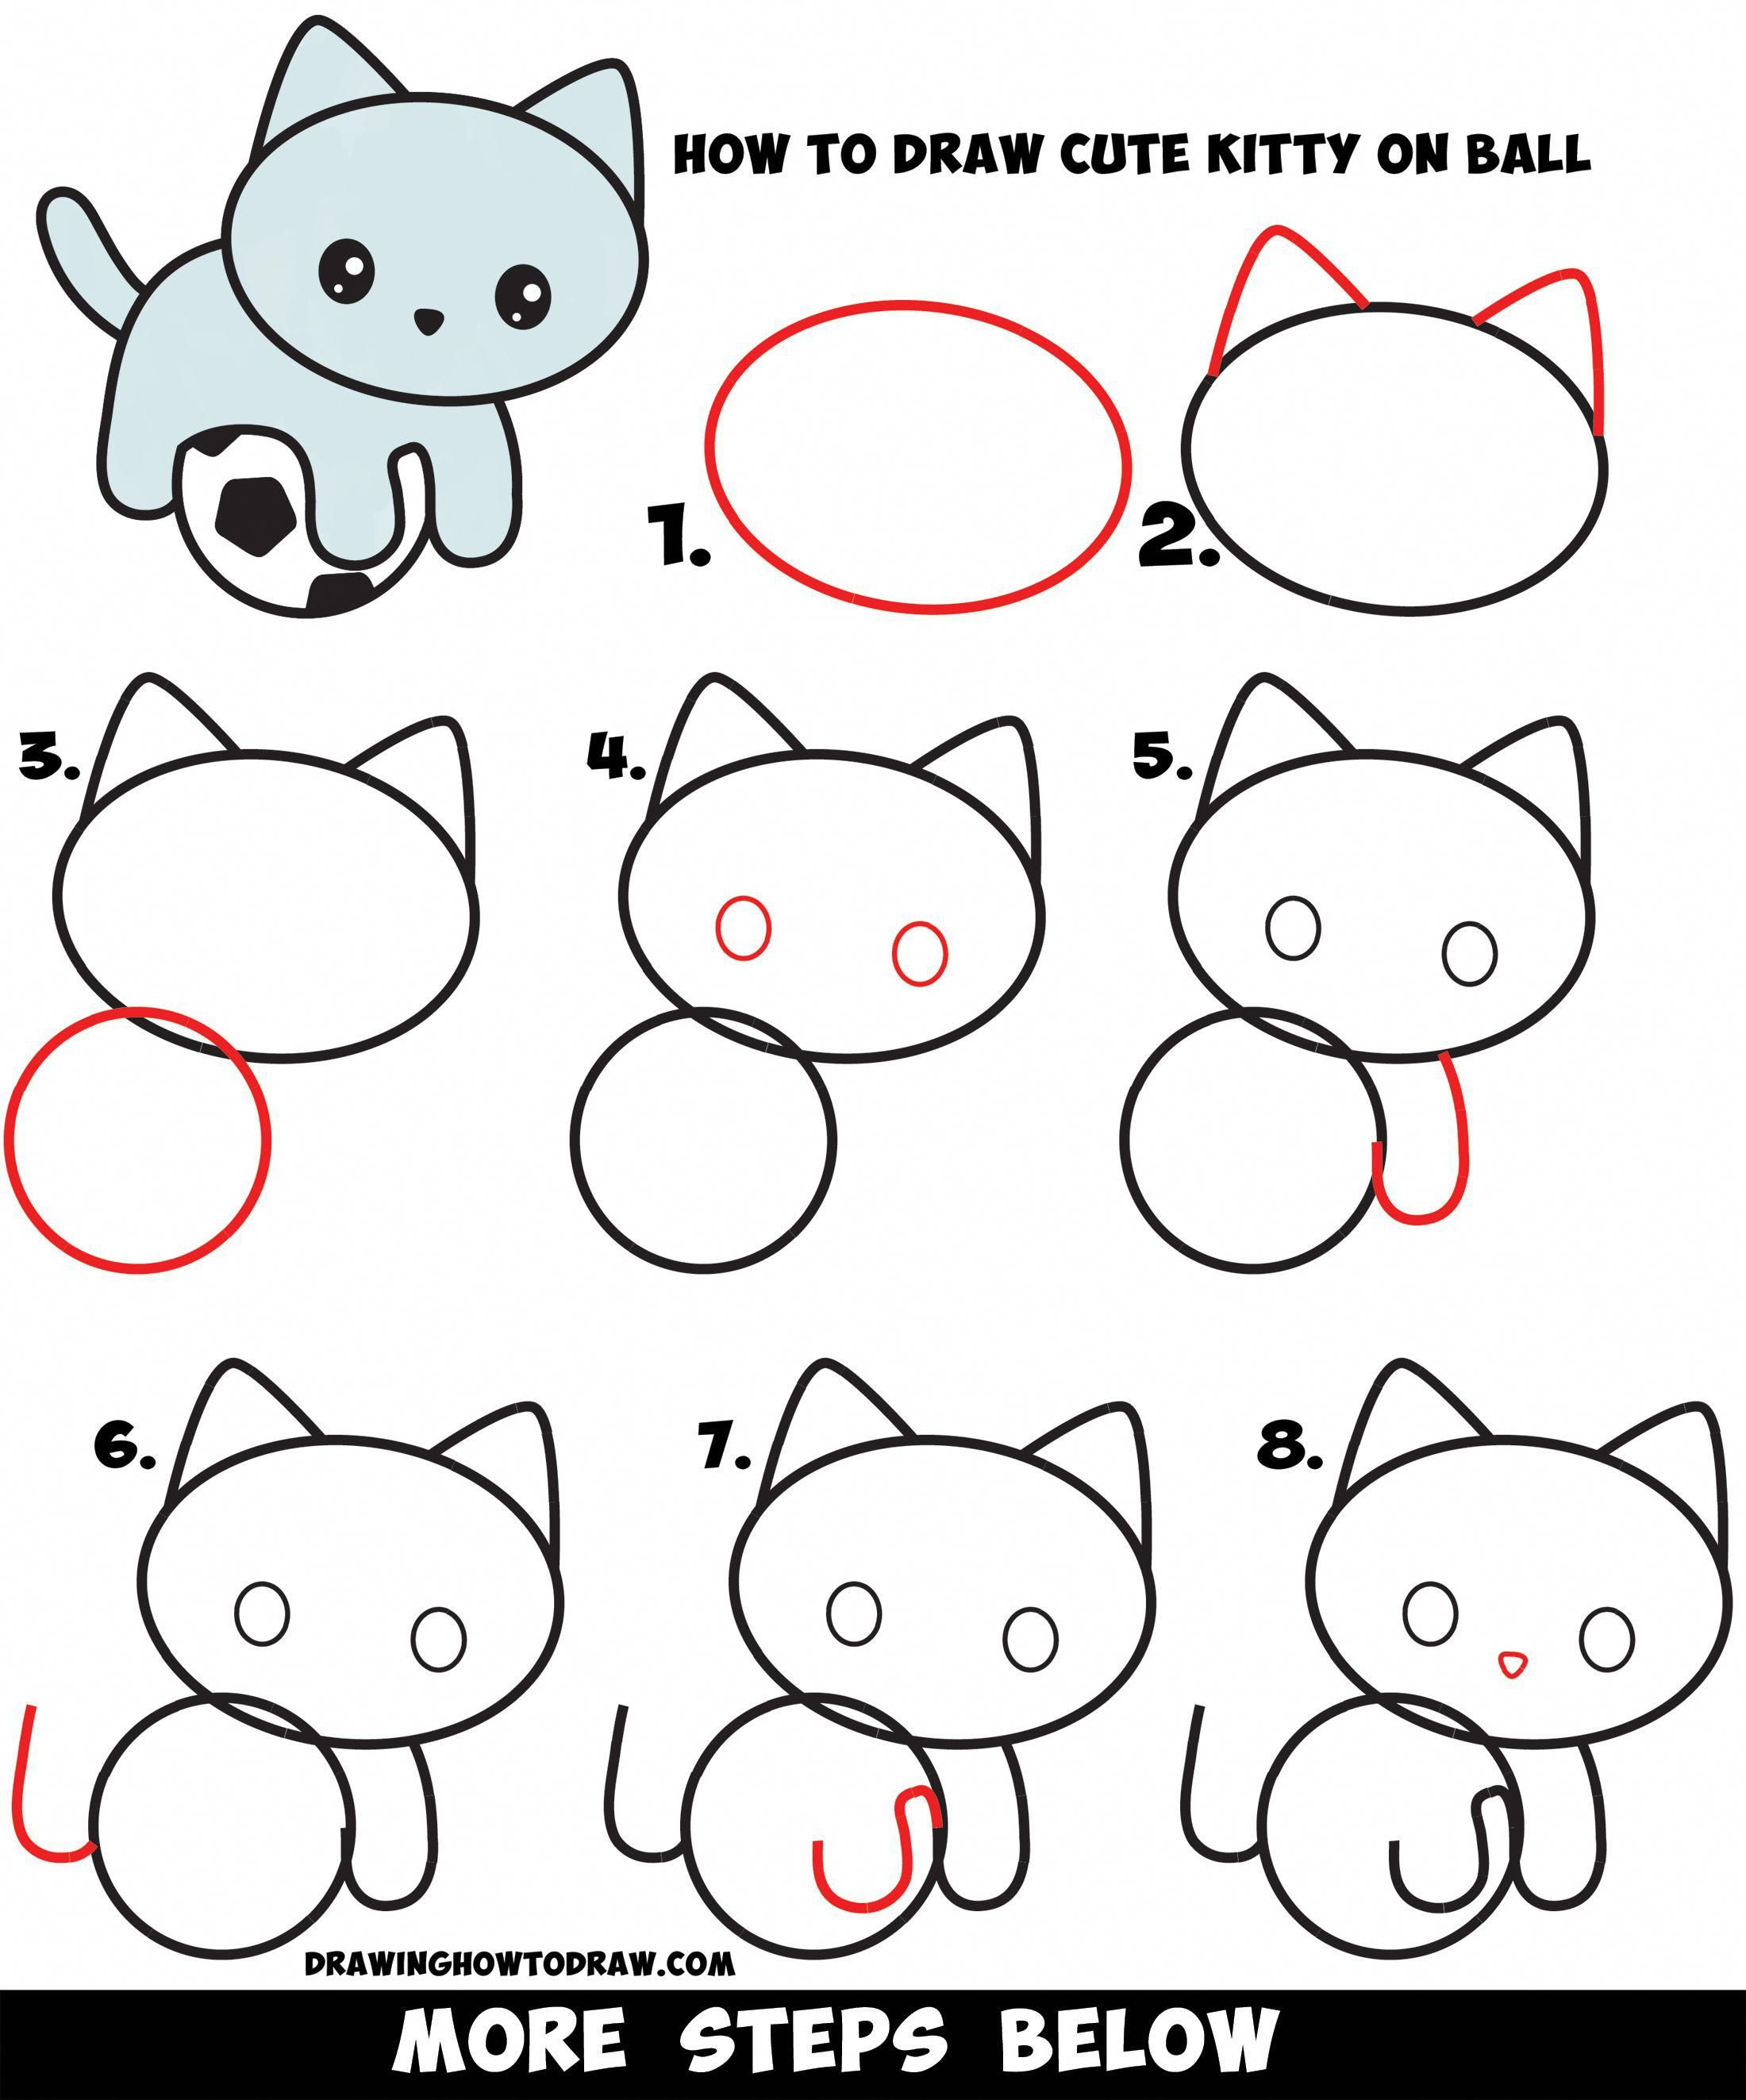 Drawing Videos For Kids To Learn Art With Easy And Step By Step Instructions39279514111257 Drawing Tutorials For Kids Drawing For Kids Drawing Tutorial